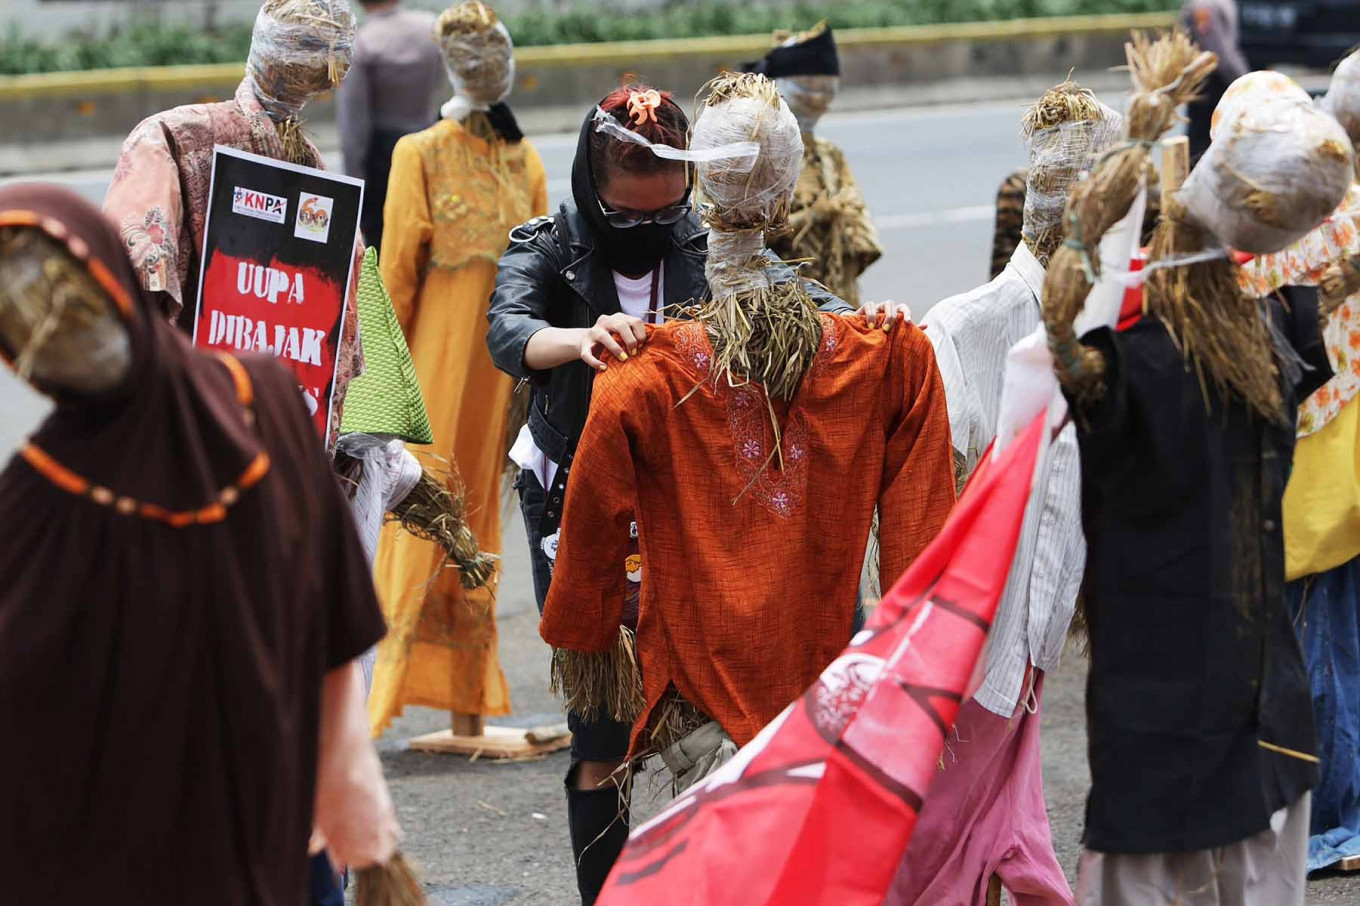 A protester sets up scarecrows during a protest against the omnibus bill on job creation in front of the legislative complex in Jakarta on Sept. 24, which coincides with National Farmers Day. The protesters voiced their opposition to the domestic food supply provisions in the omnibus bill, arguing that it could weaken domestic farmers' production and favor importers. JP/Wendra Ajistyatama